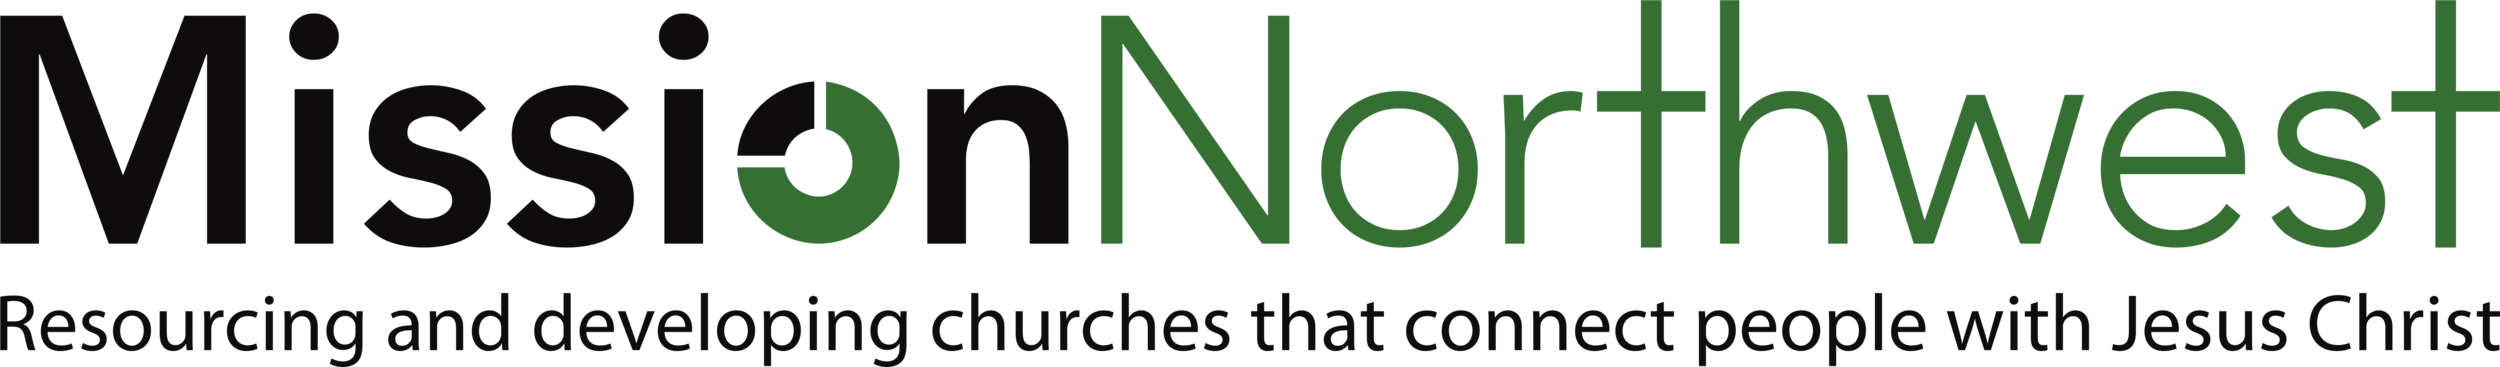 logo with statement, no background.png